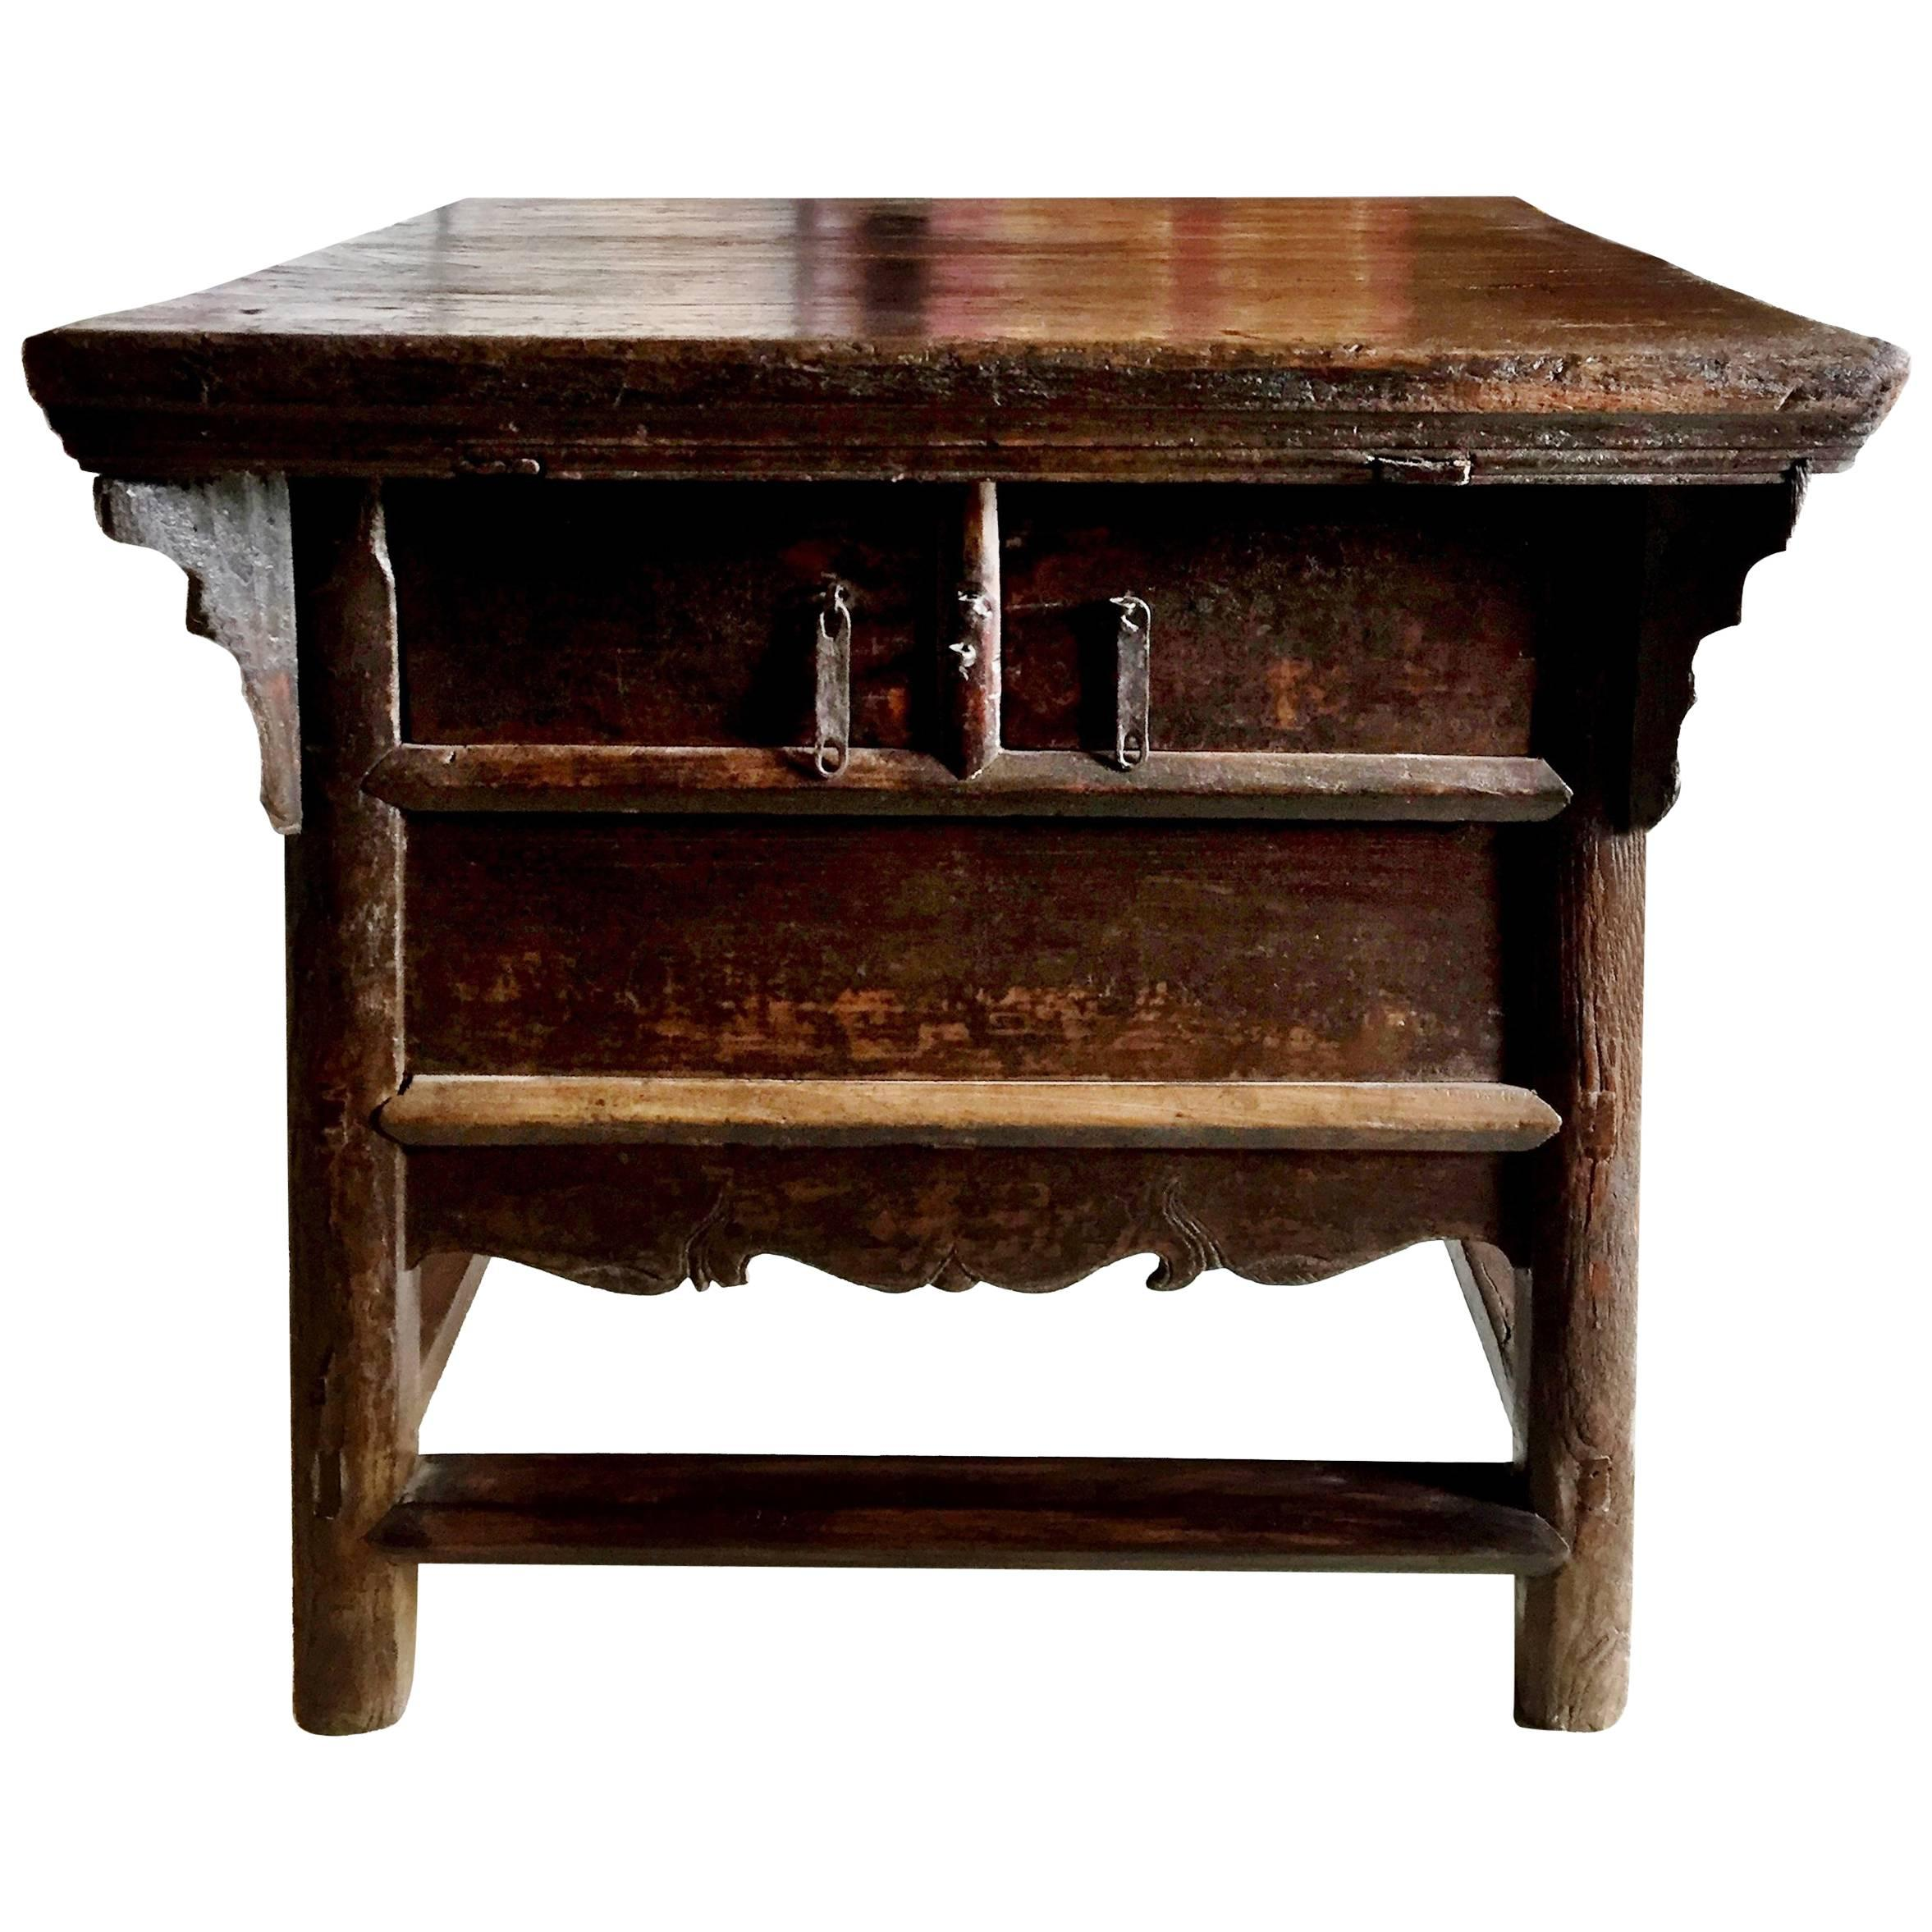 Antique Farm Table, Rustic Chinese Old Farm Table 1